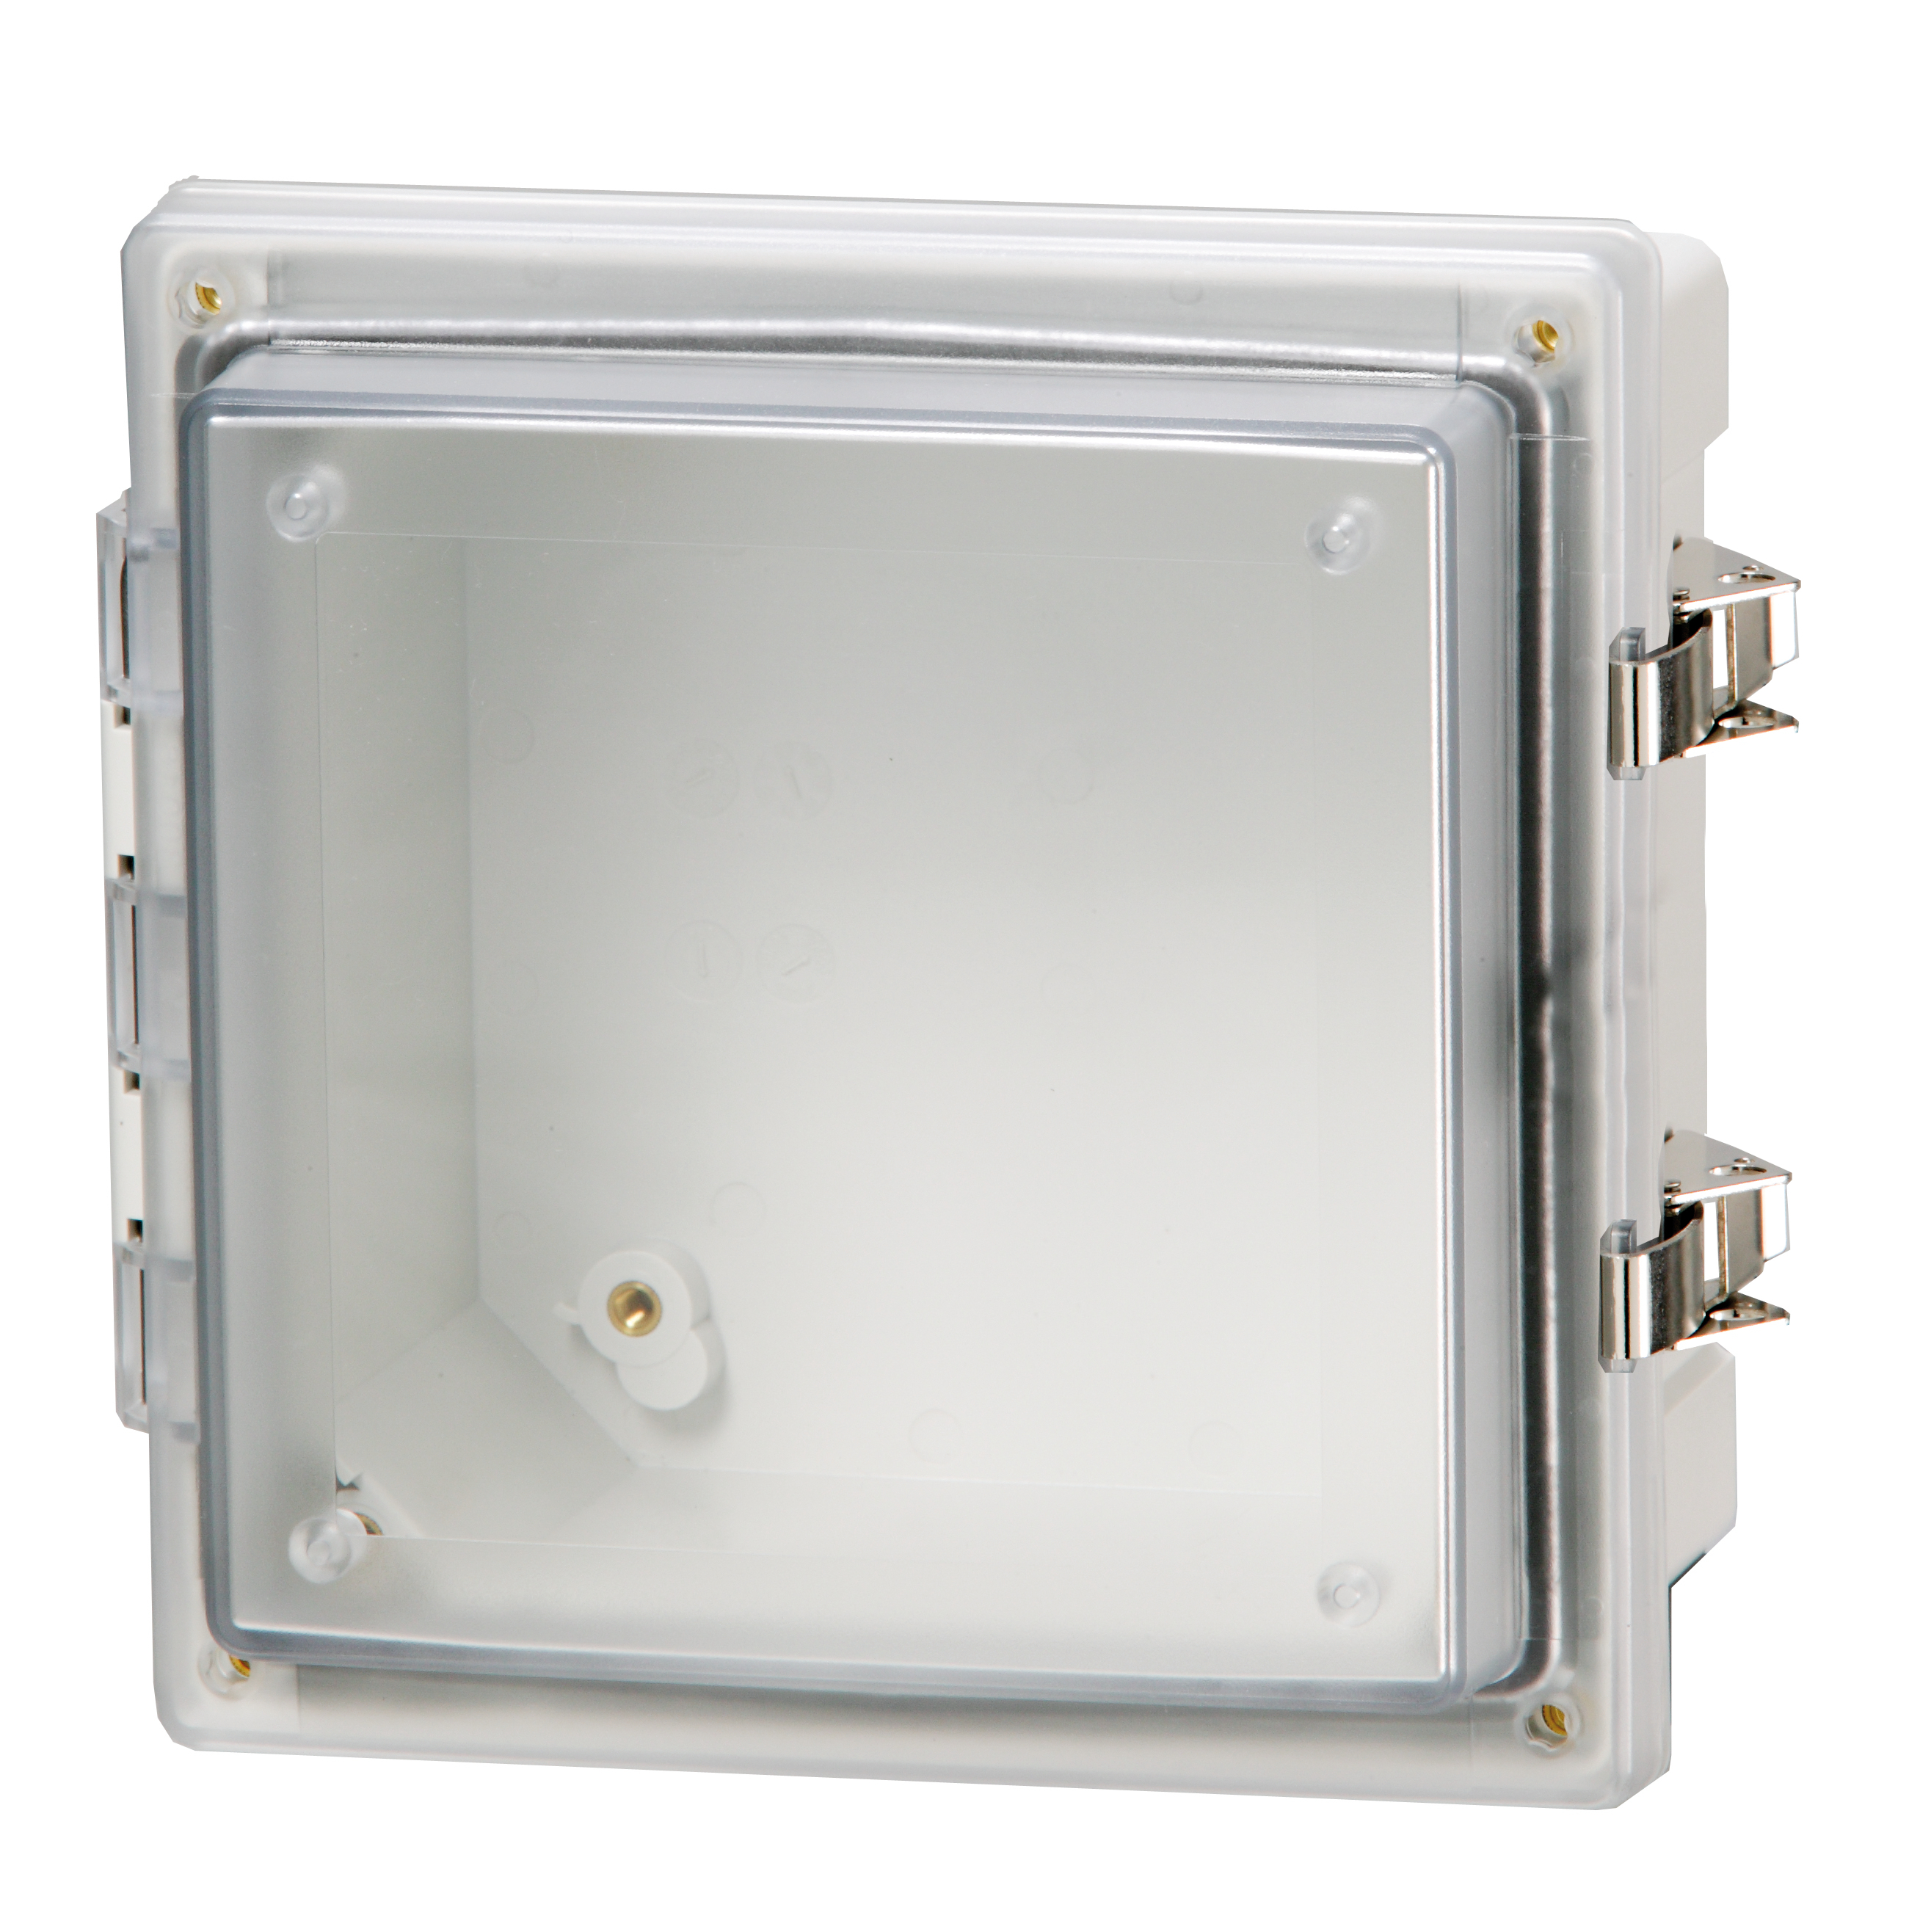 NEMA hinged clear cover enclosure